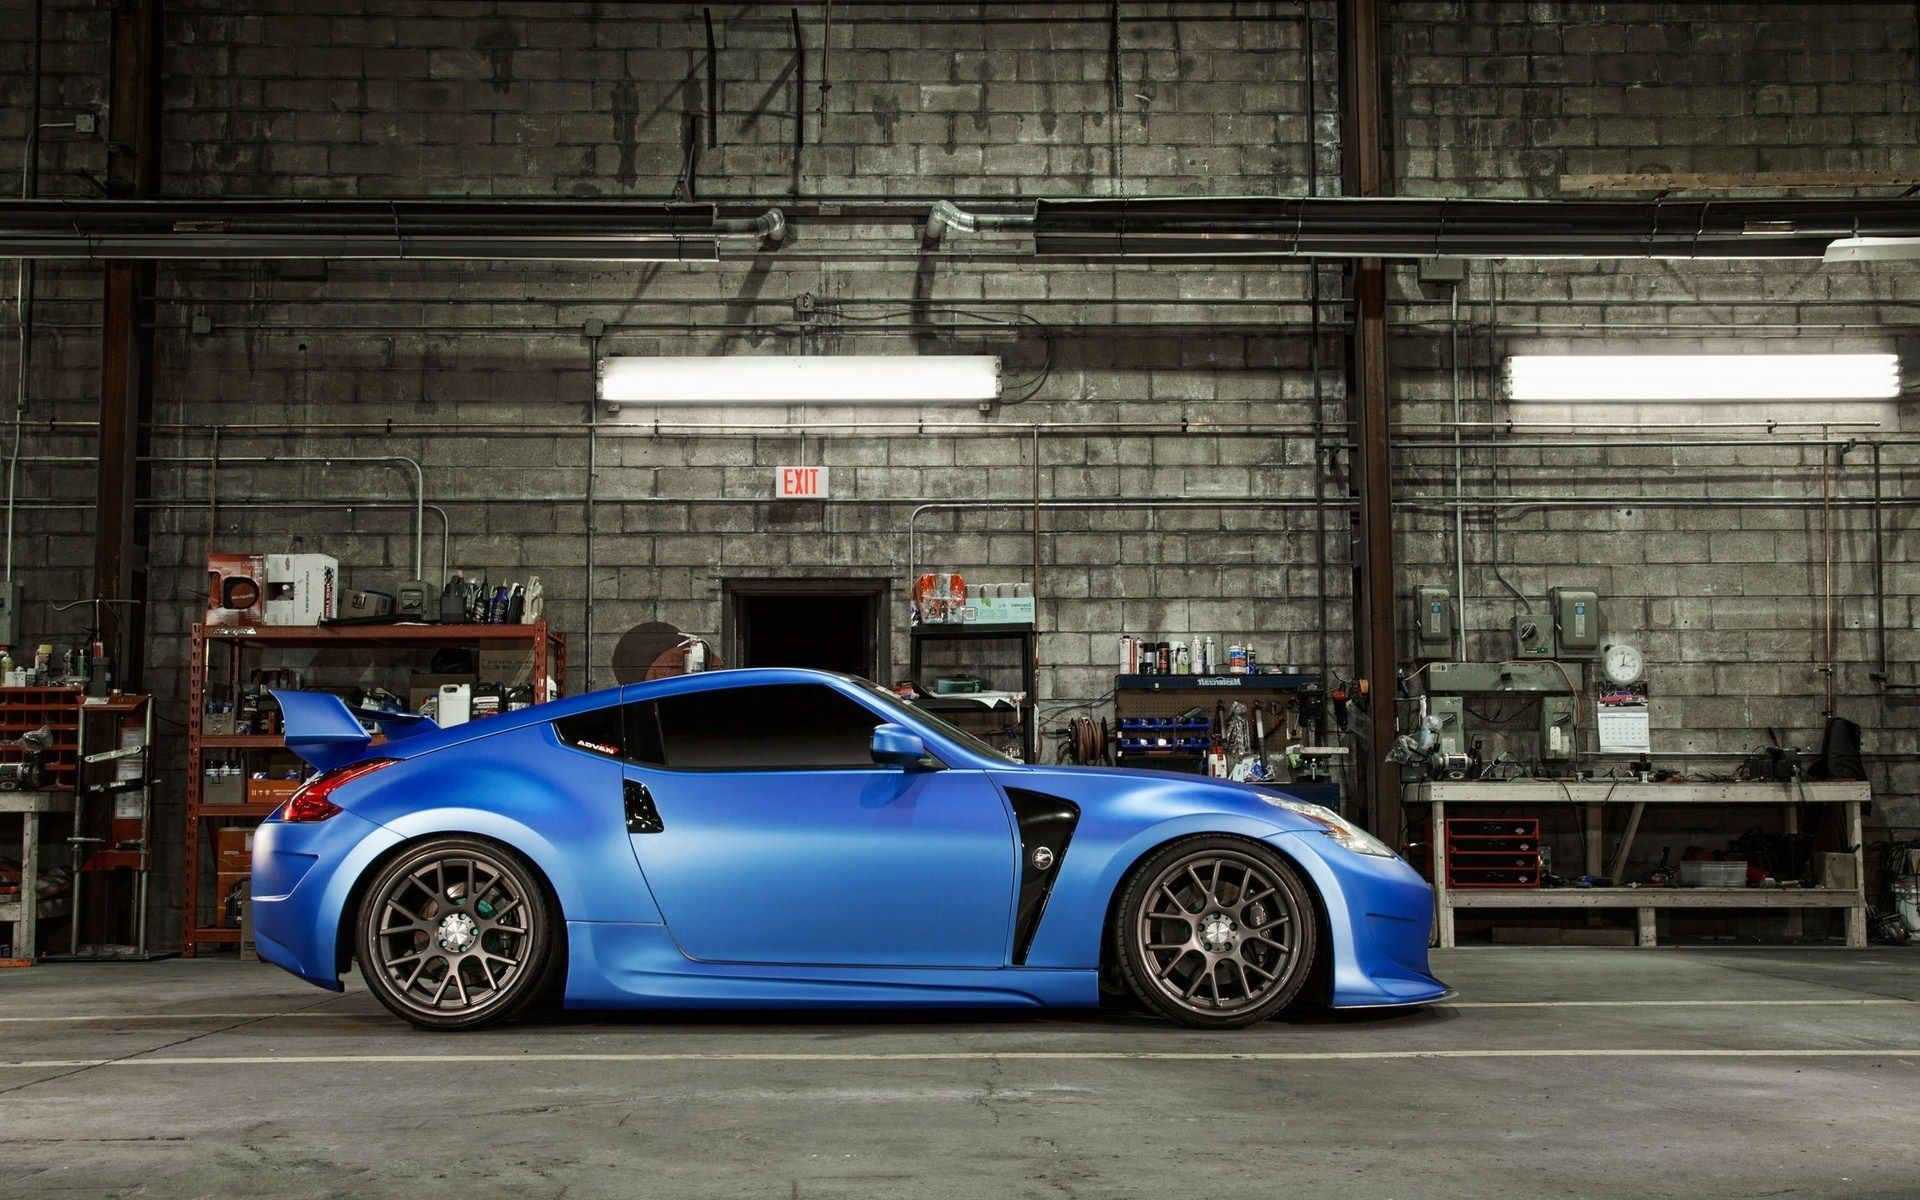 Superbe 2018 Nissan 370Z Coupe Sports Car, Blue Car, Side View Wallpaper |  Cars